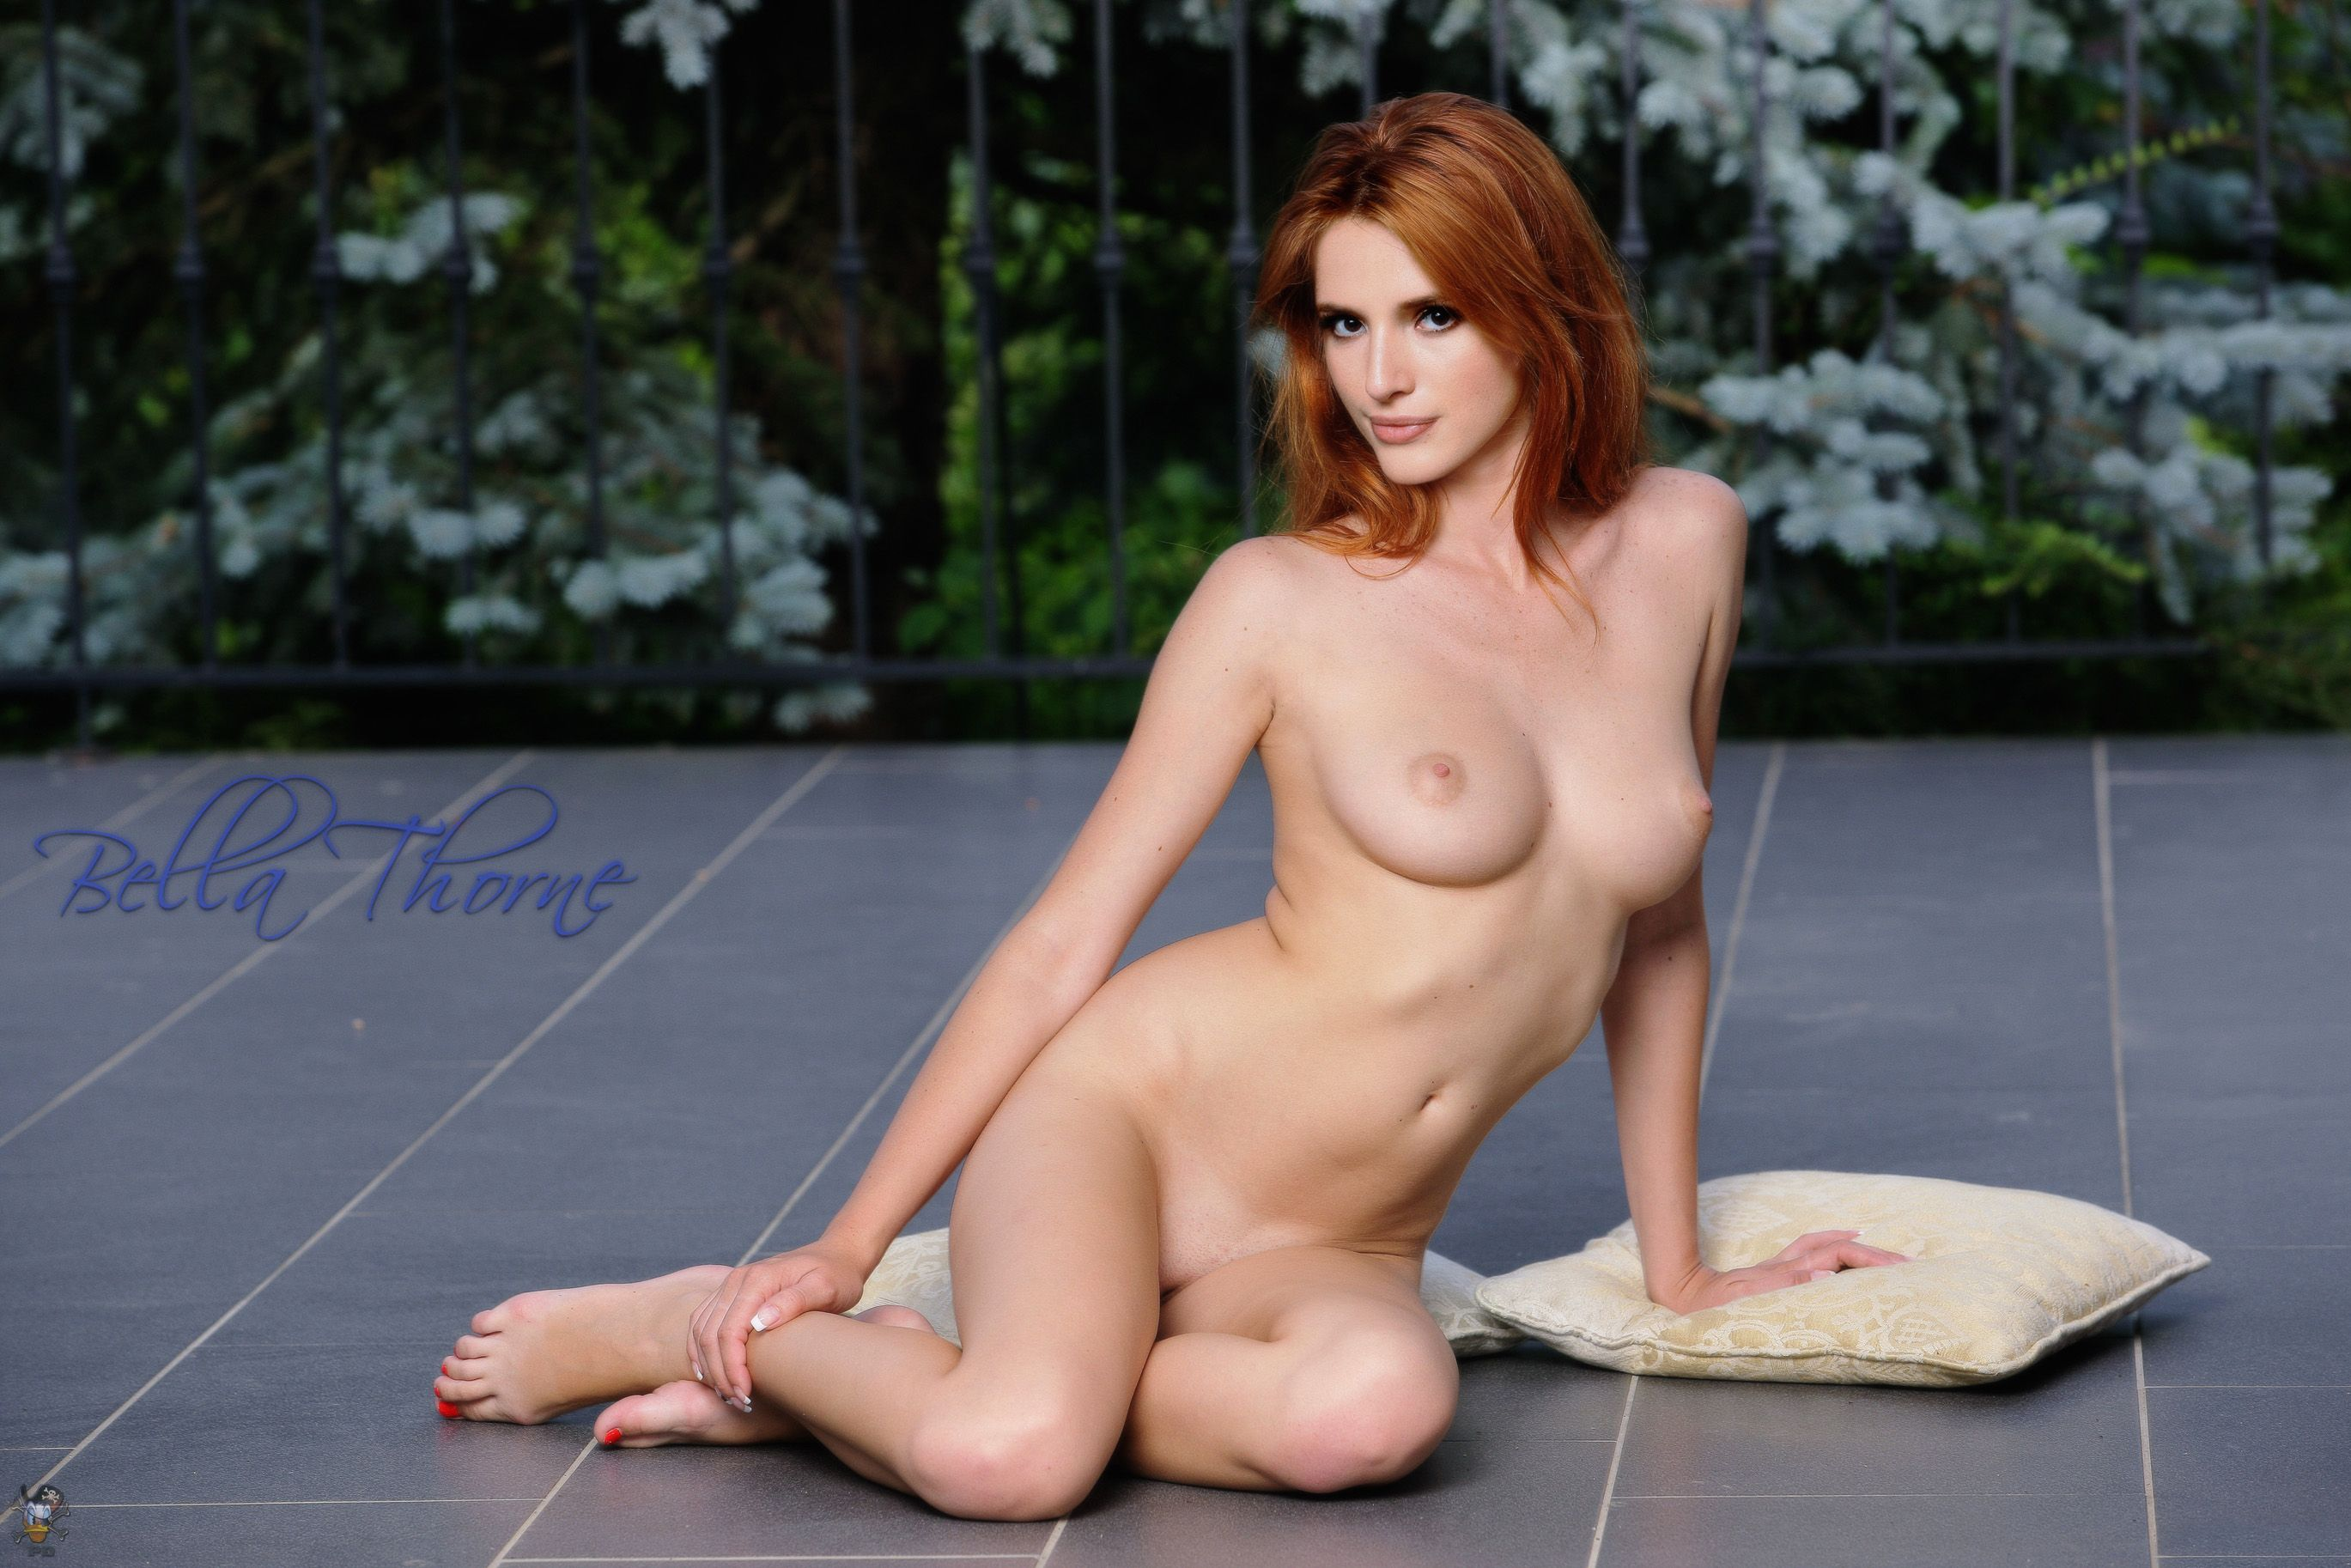 Bella thorne nude fake — pic 15